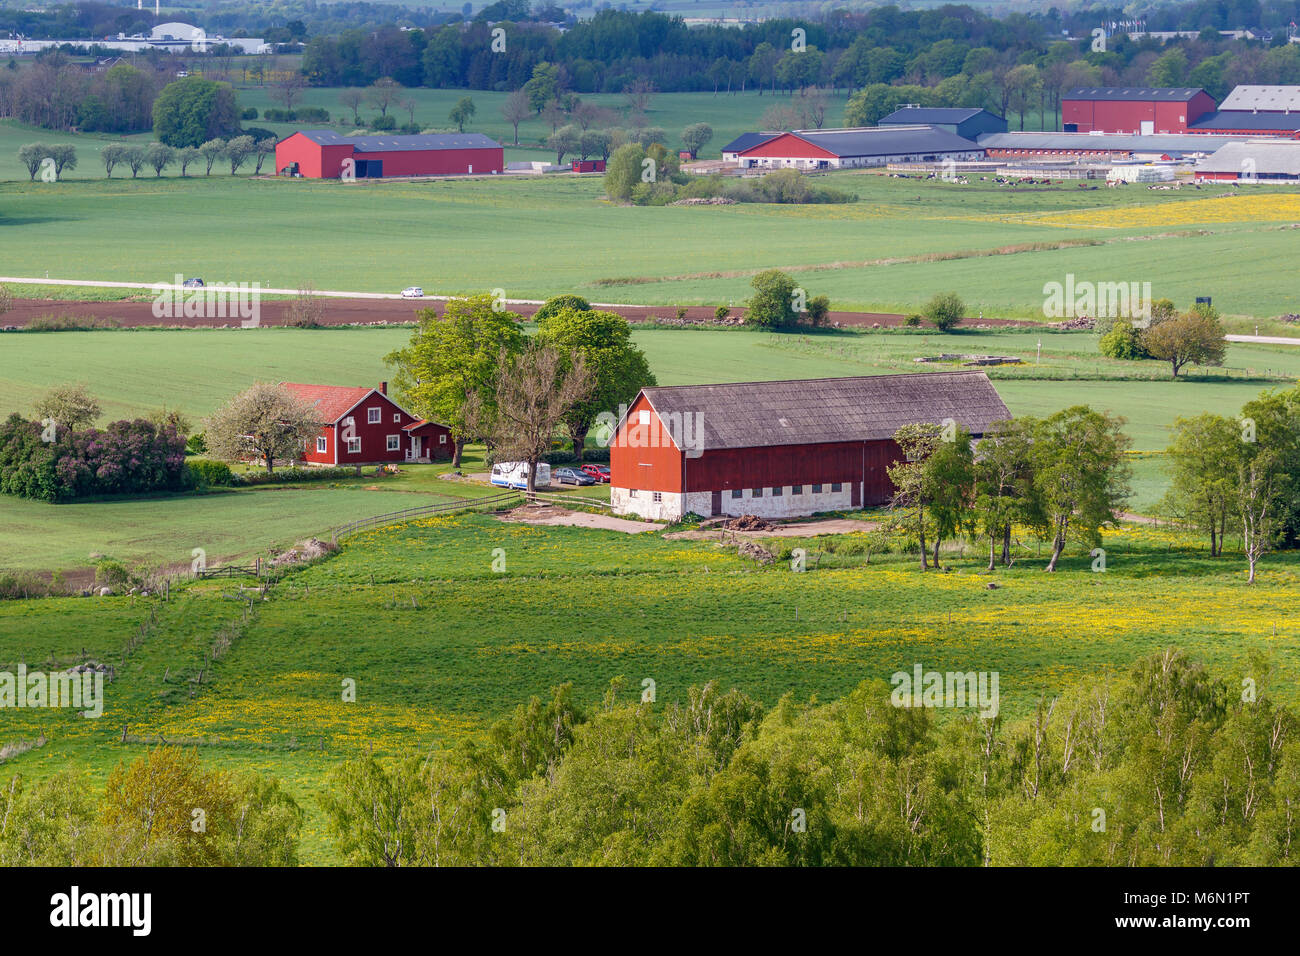 Farmhouse in the countryside with fields - Stock Image